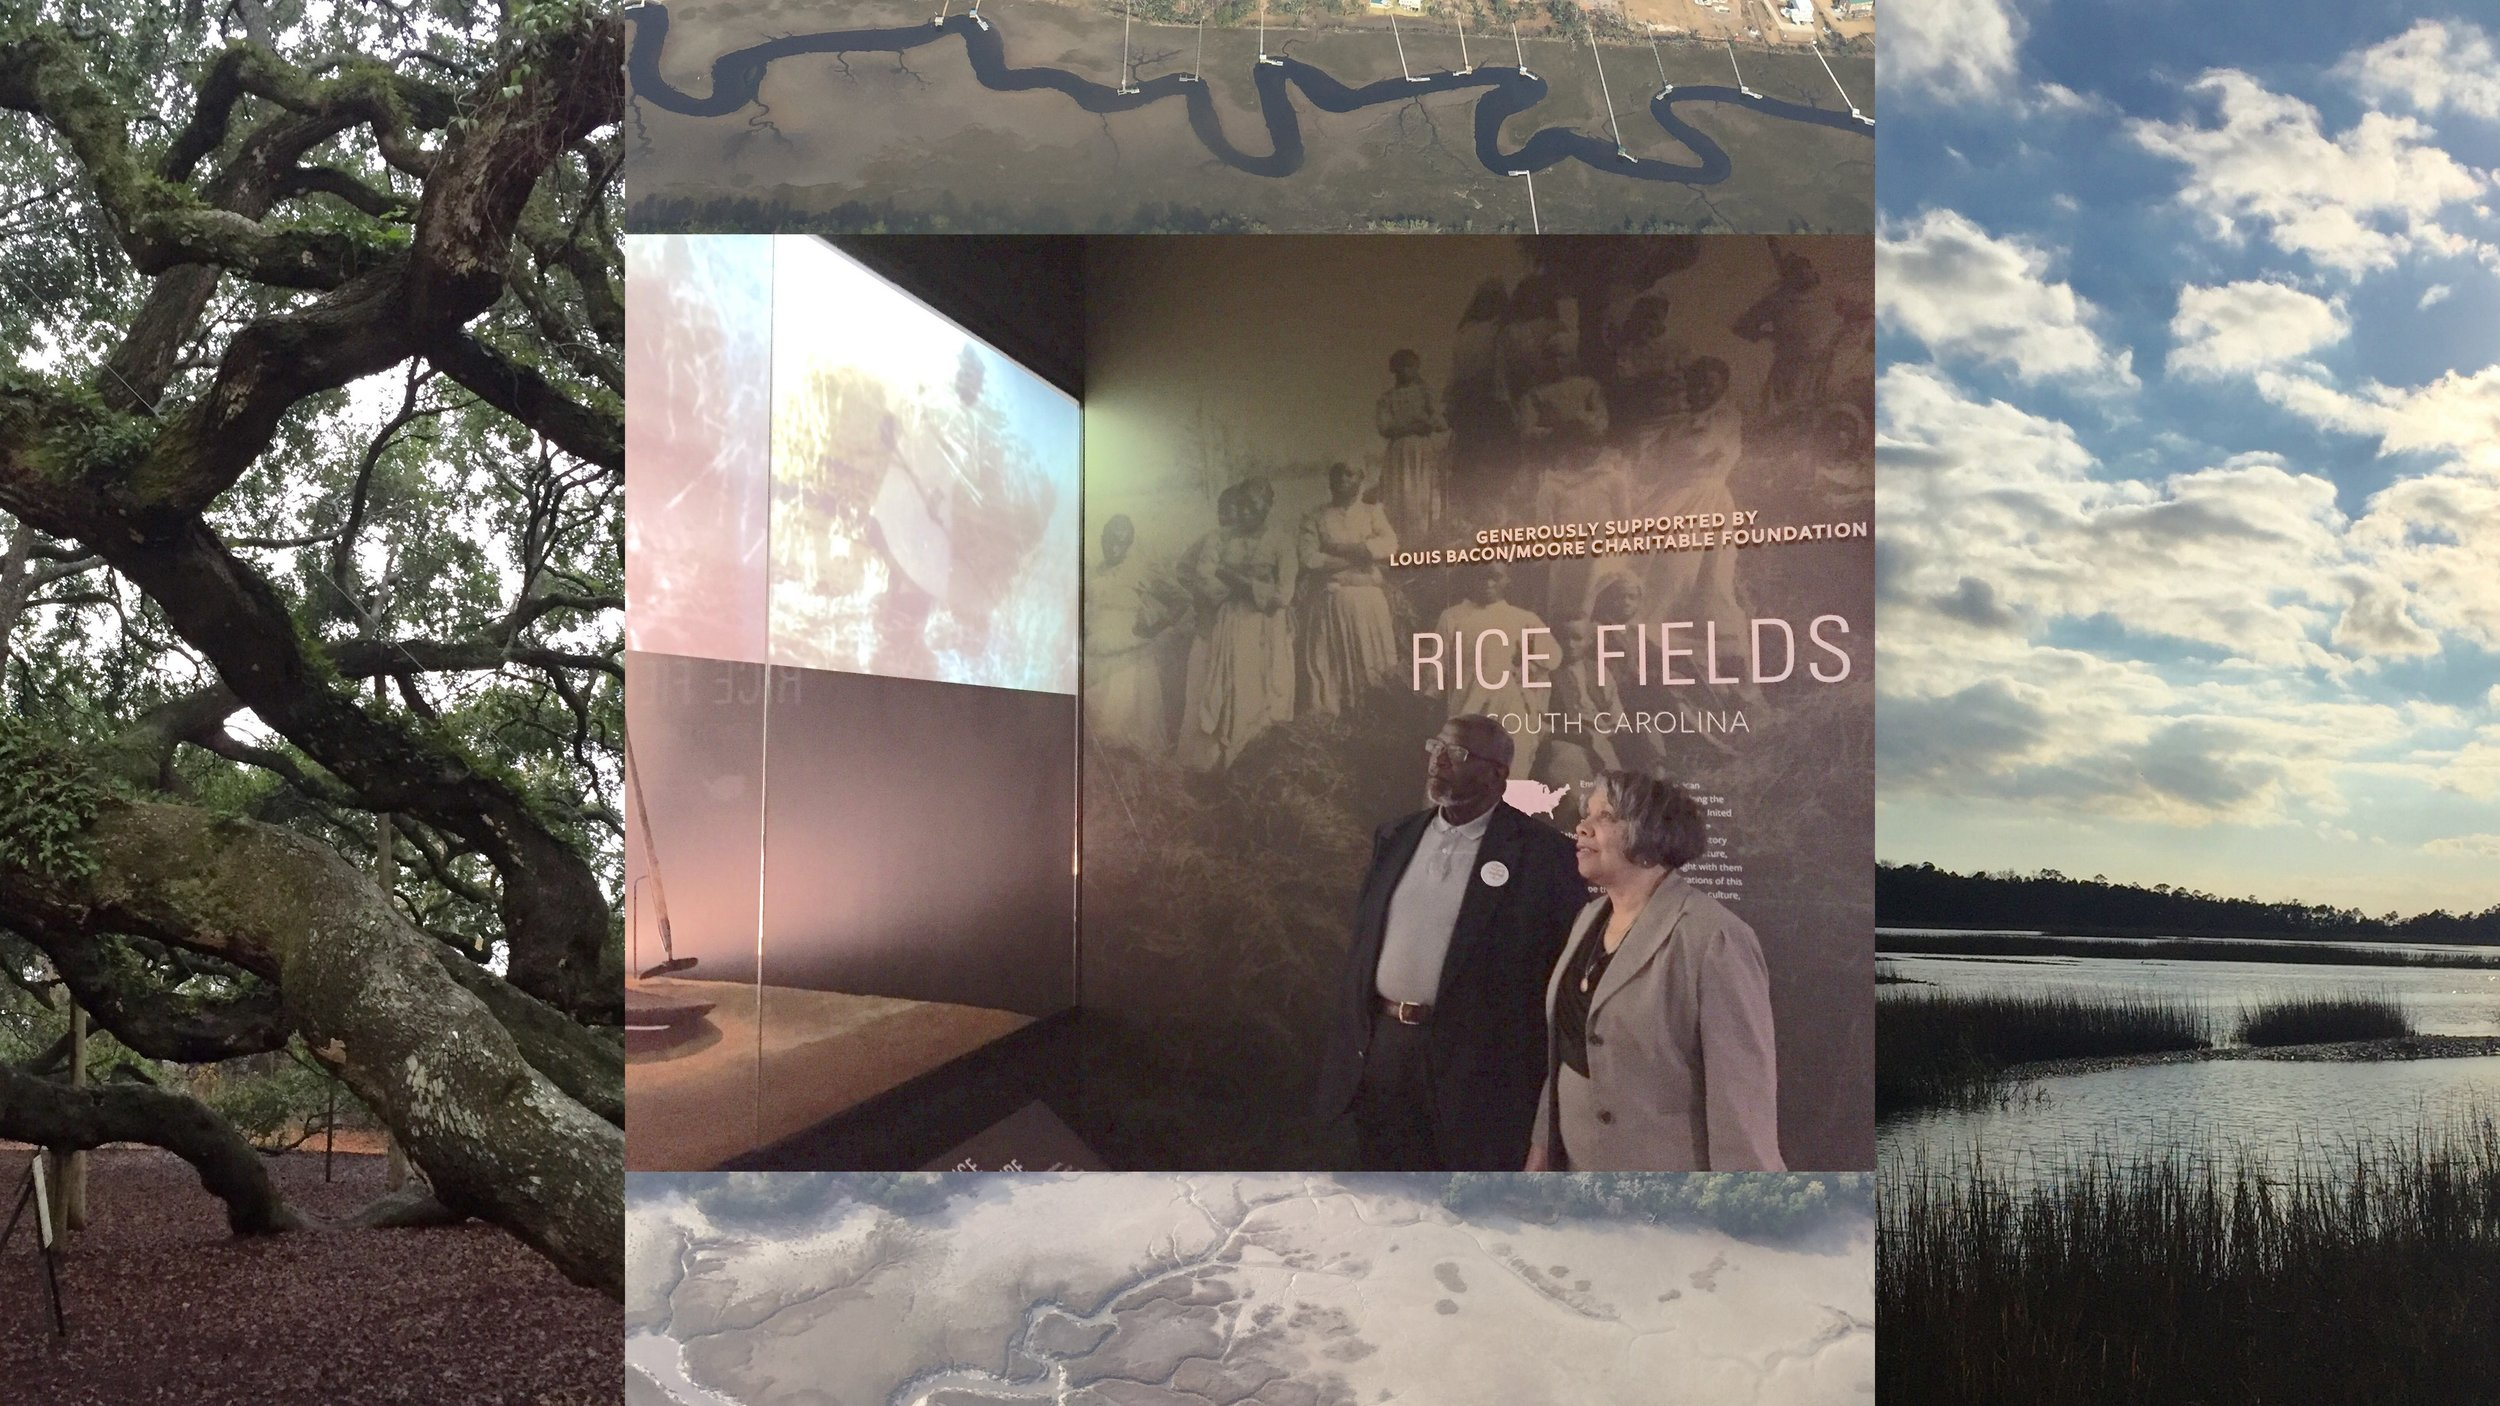 Dr. Emily Moore stands in awe of the Smithsonian NMAAHC's South Carolina Rice Fields exhibit with her husband, Dr. Herman Blake, before visiting the Emmett Till Memorial exhibit. The two are framed by two iconic South Carolina Lowcountry landmarks: historic Angel Oak on John's Island and a salt marsh at Mosquito Beach, a popular social destination for African Americans during the Jim Crow Era. Photo credit: Dr. Rolando Herts, Mississippi Delta National Heritage Area.